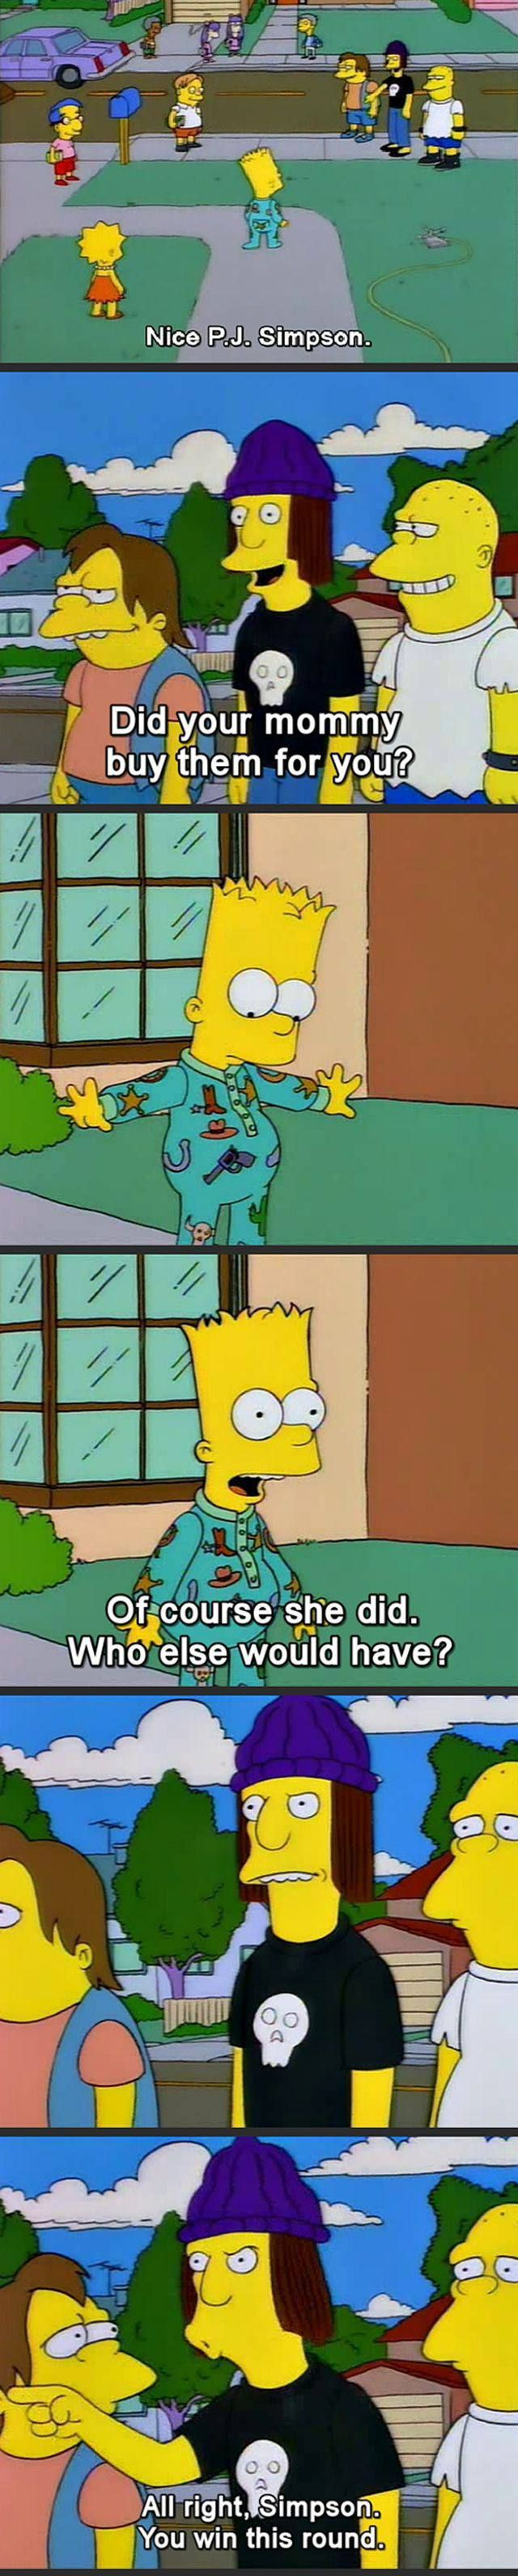 Bart is smarter than everyone thinks. Such a comedian he is.